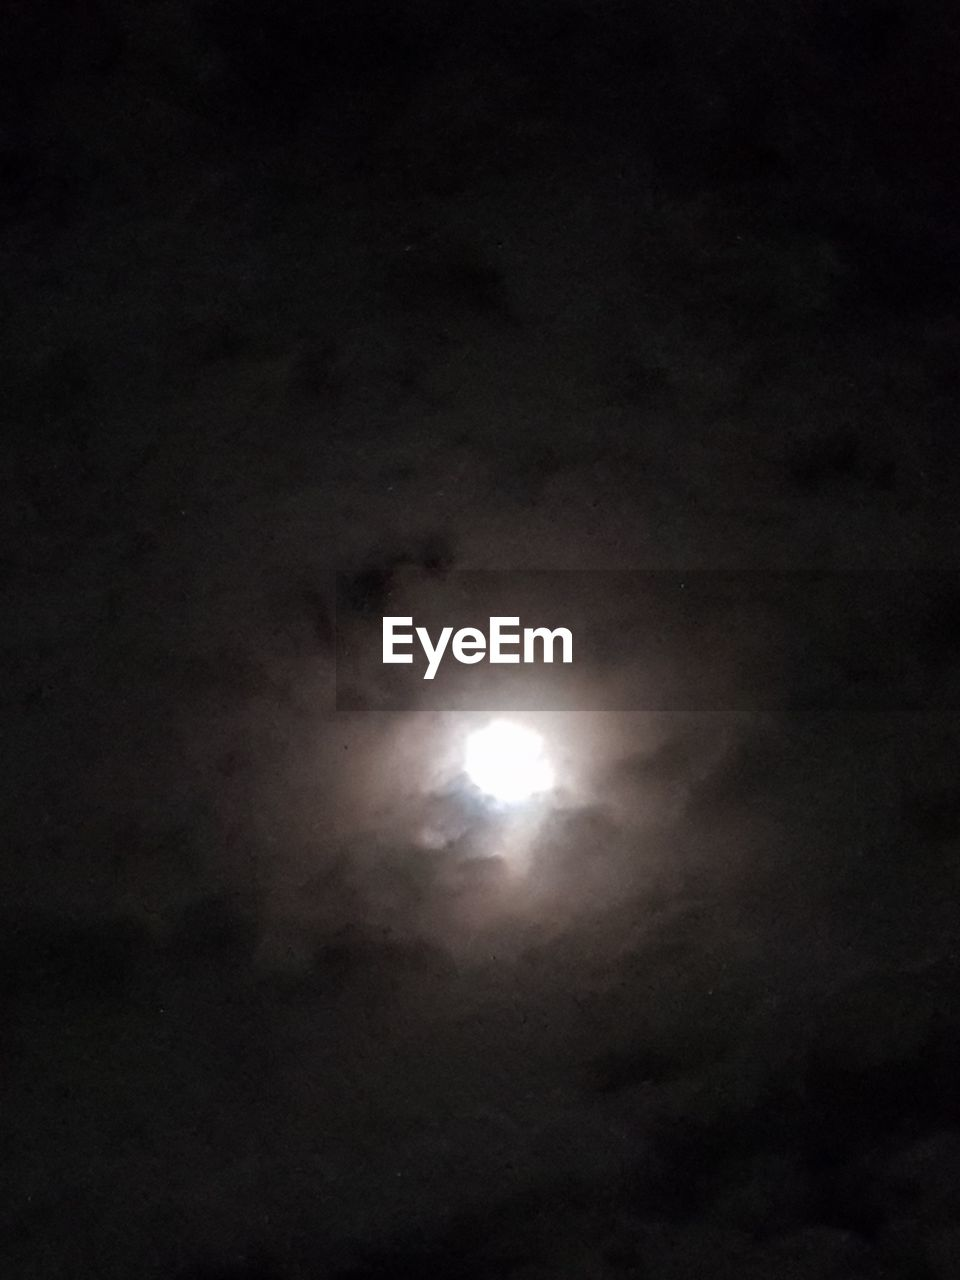 moon, night, nature, beauty in nature, scenics, astronomy, tranquility, dark, low angle view, no people, sky, outdoors, moonlight, illuminated, space